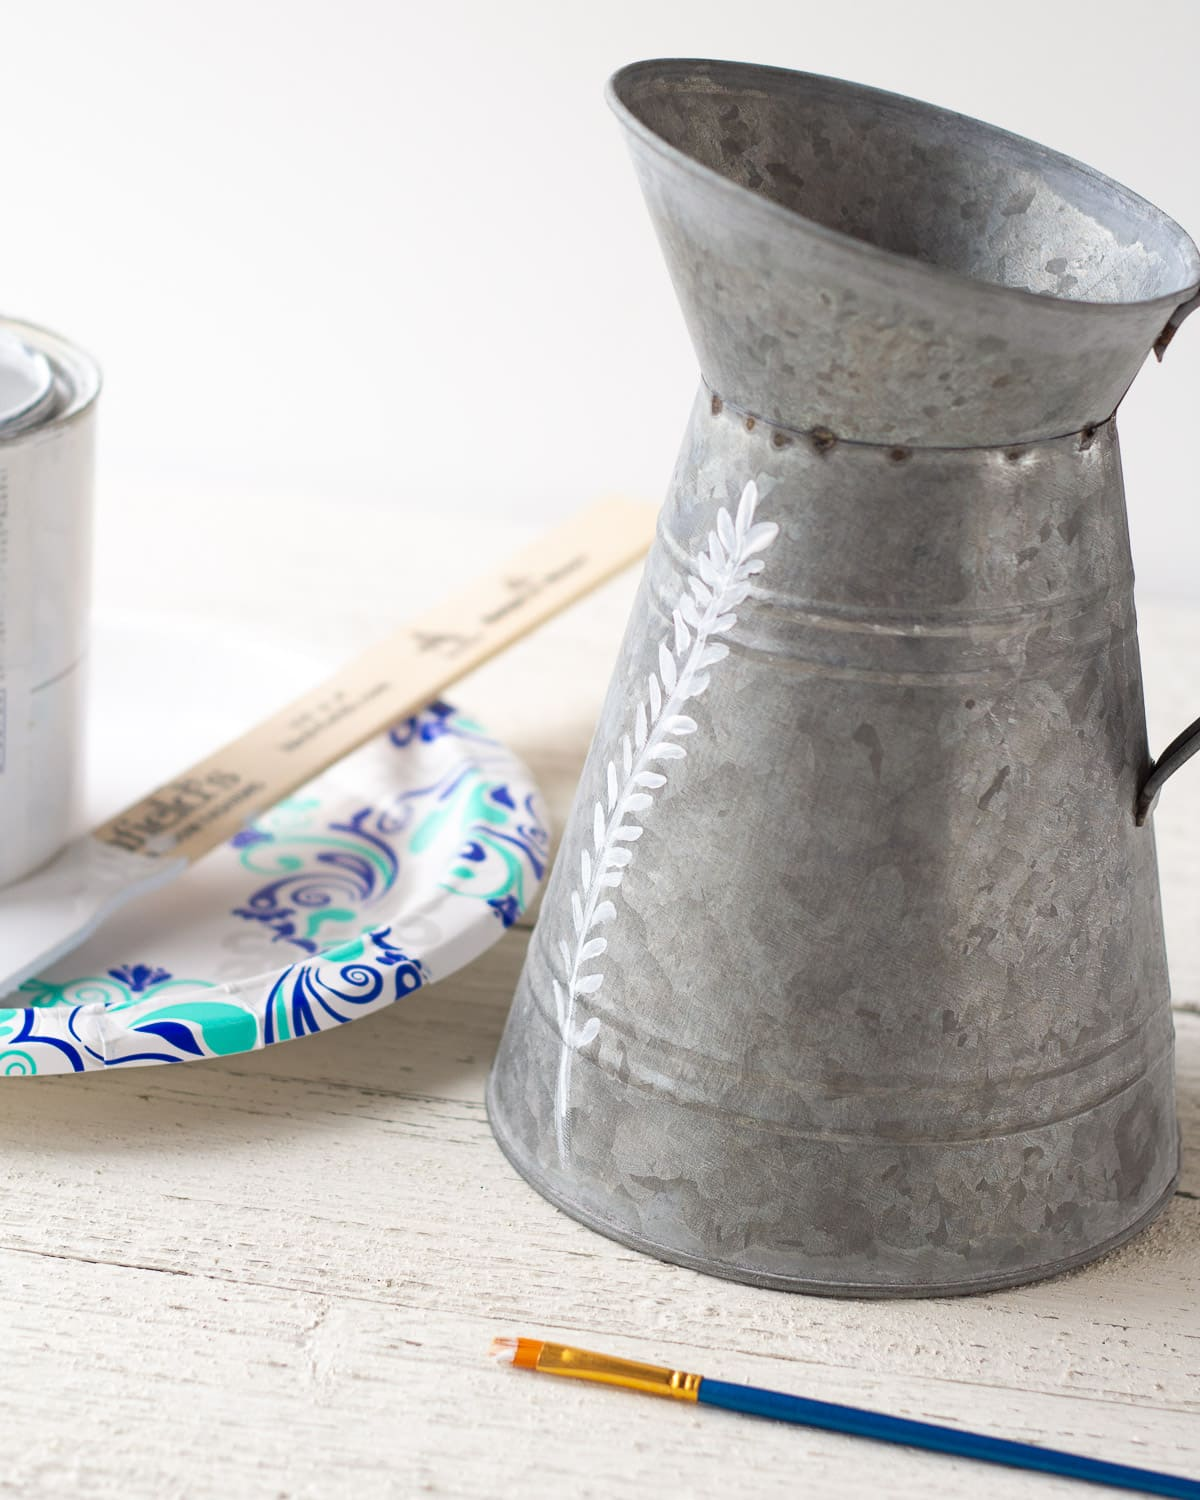 Painting a floral leaf design onto a galvanized pitcher with chalk paint.